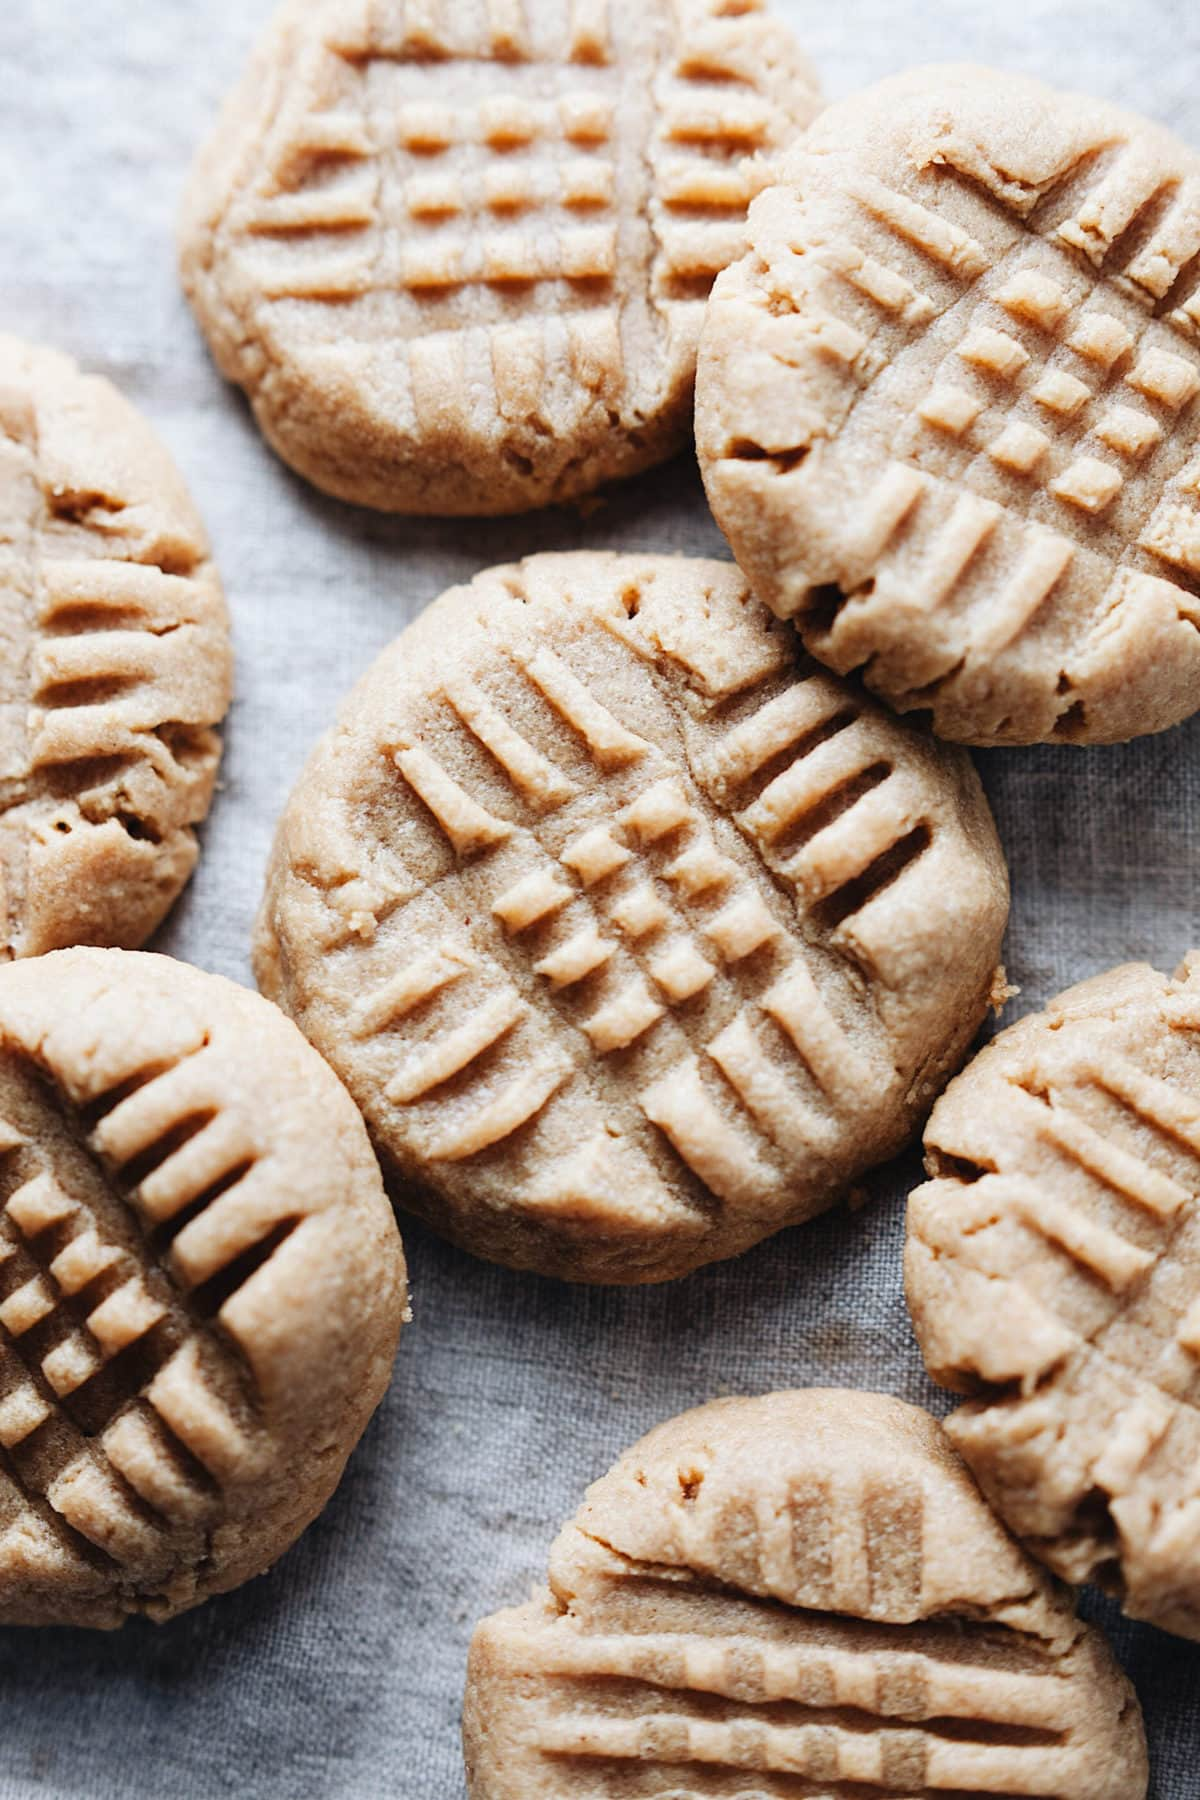 A group of peanut butter cookies with cross-hatch pattern